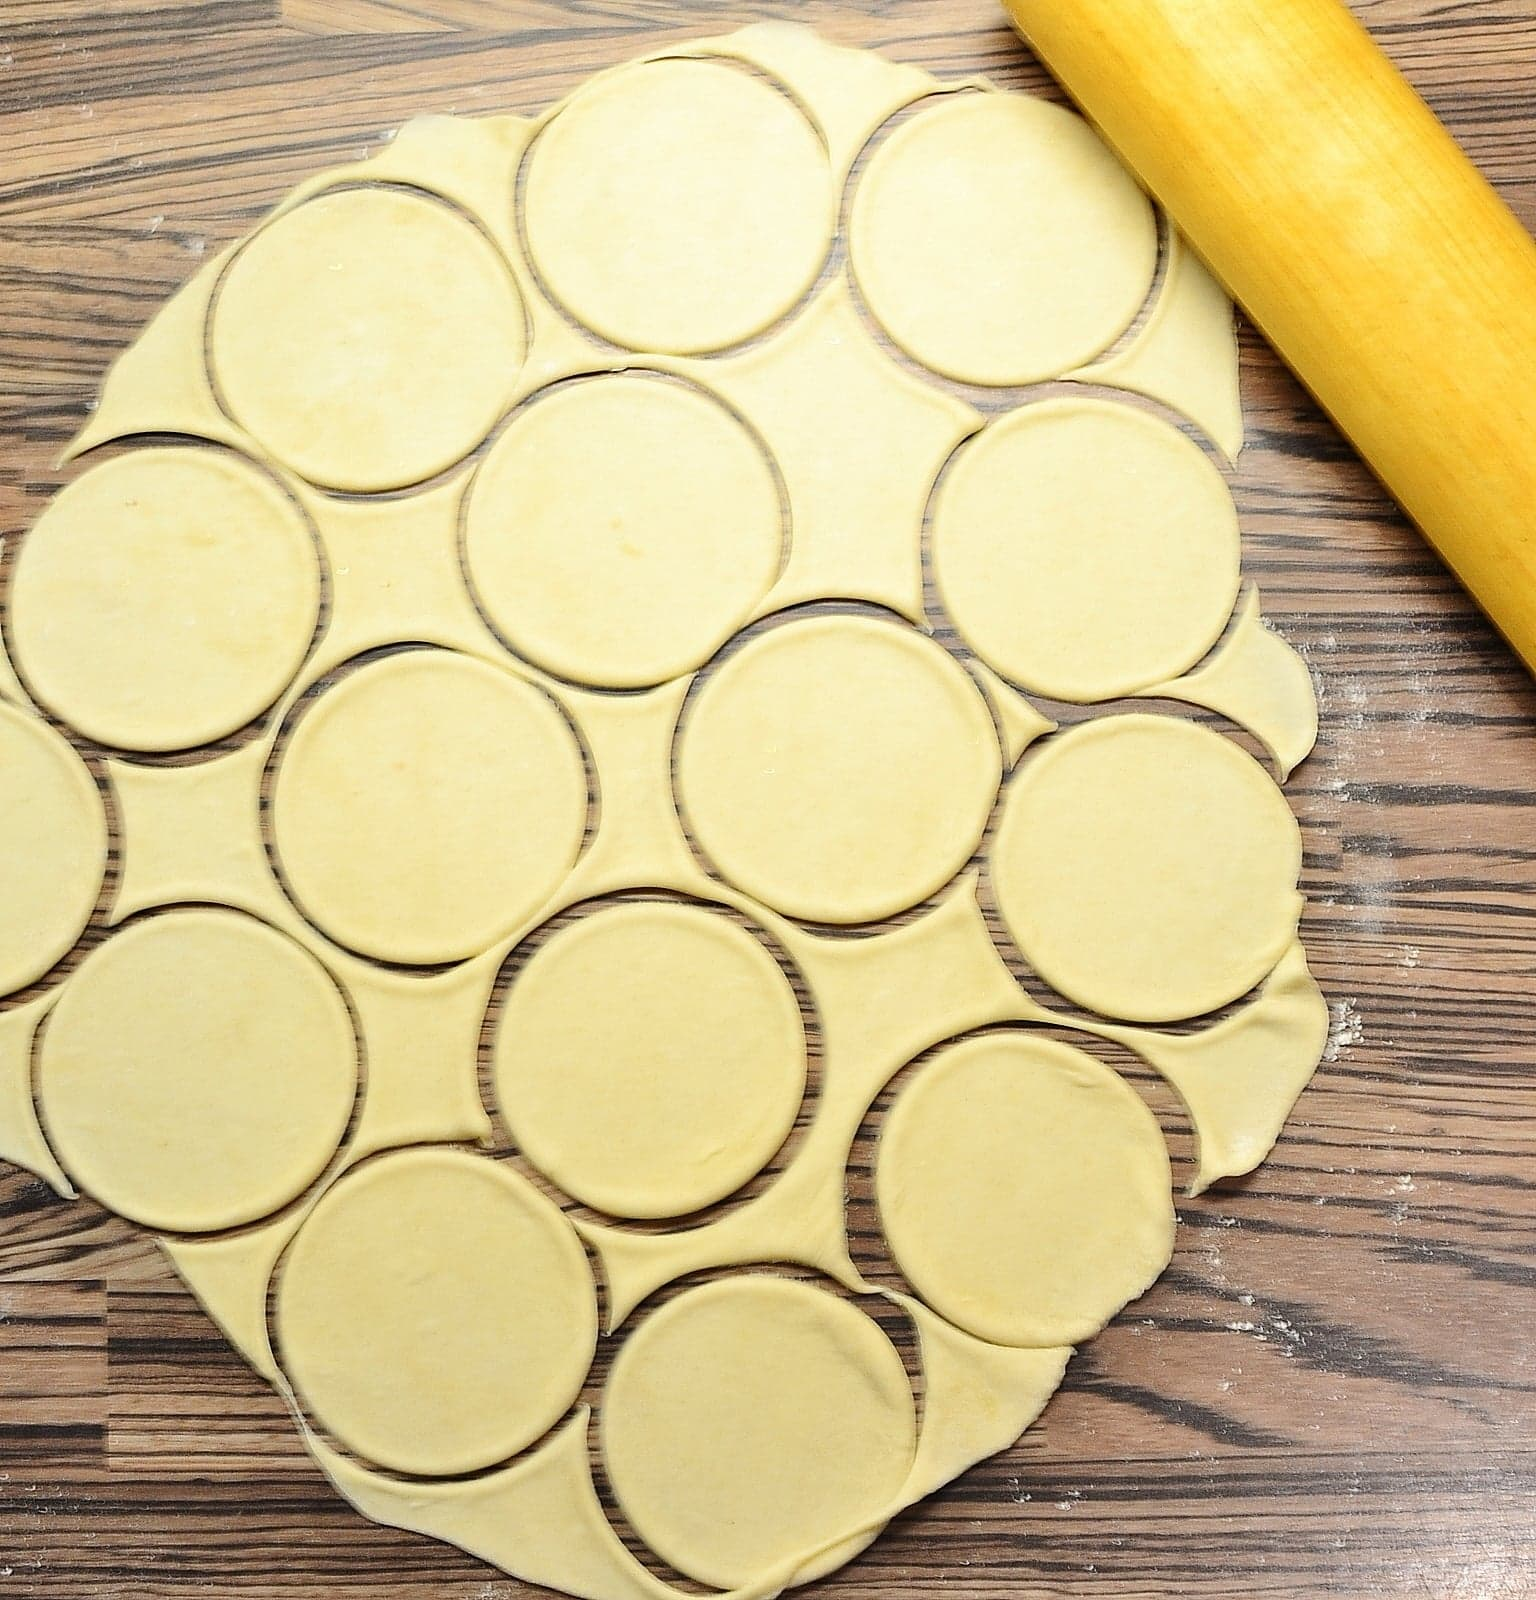 Rolled out dough with cut out circles and rolling pin in top right.